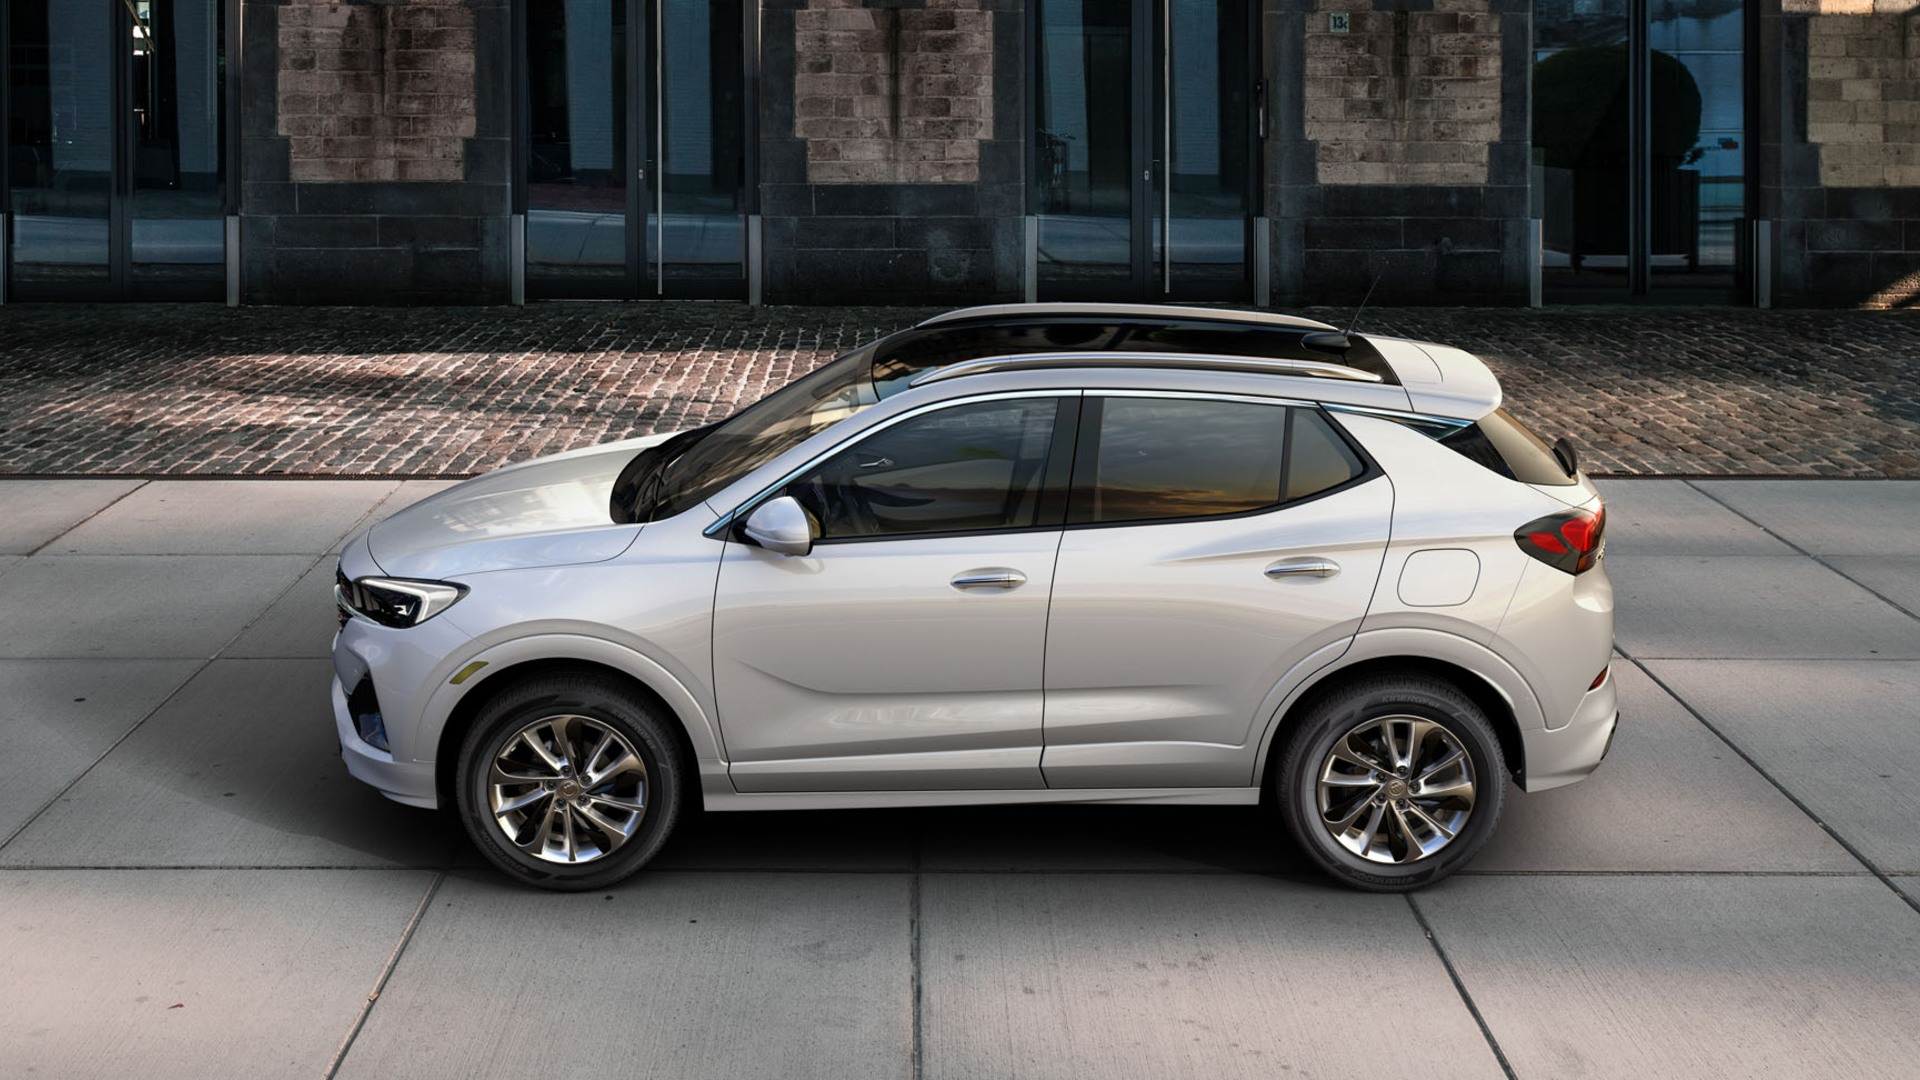 Buick Reveals U.s. Specs For The 2020 Encore Gx 2022 Buick Encore Transmission, Tire Size, Test Drive